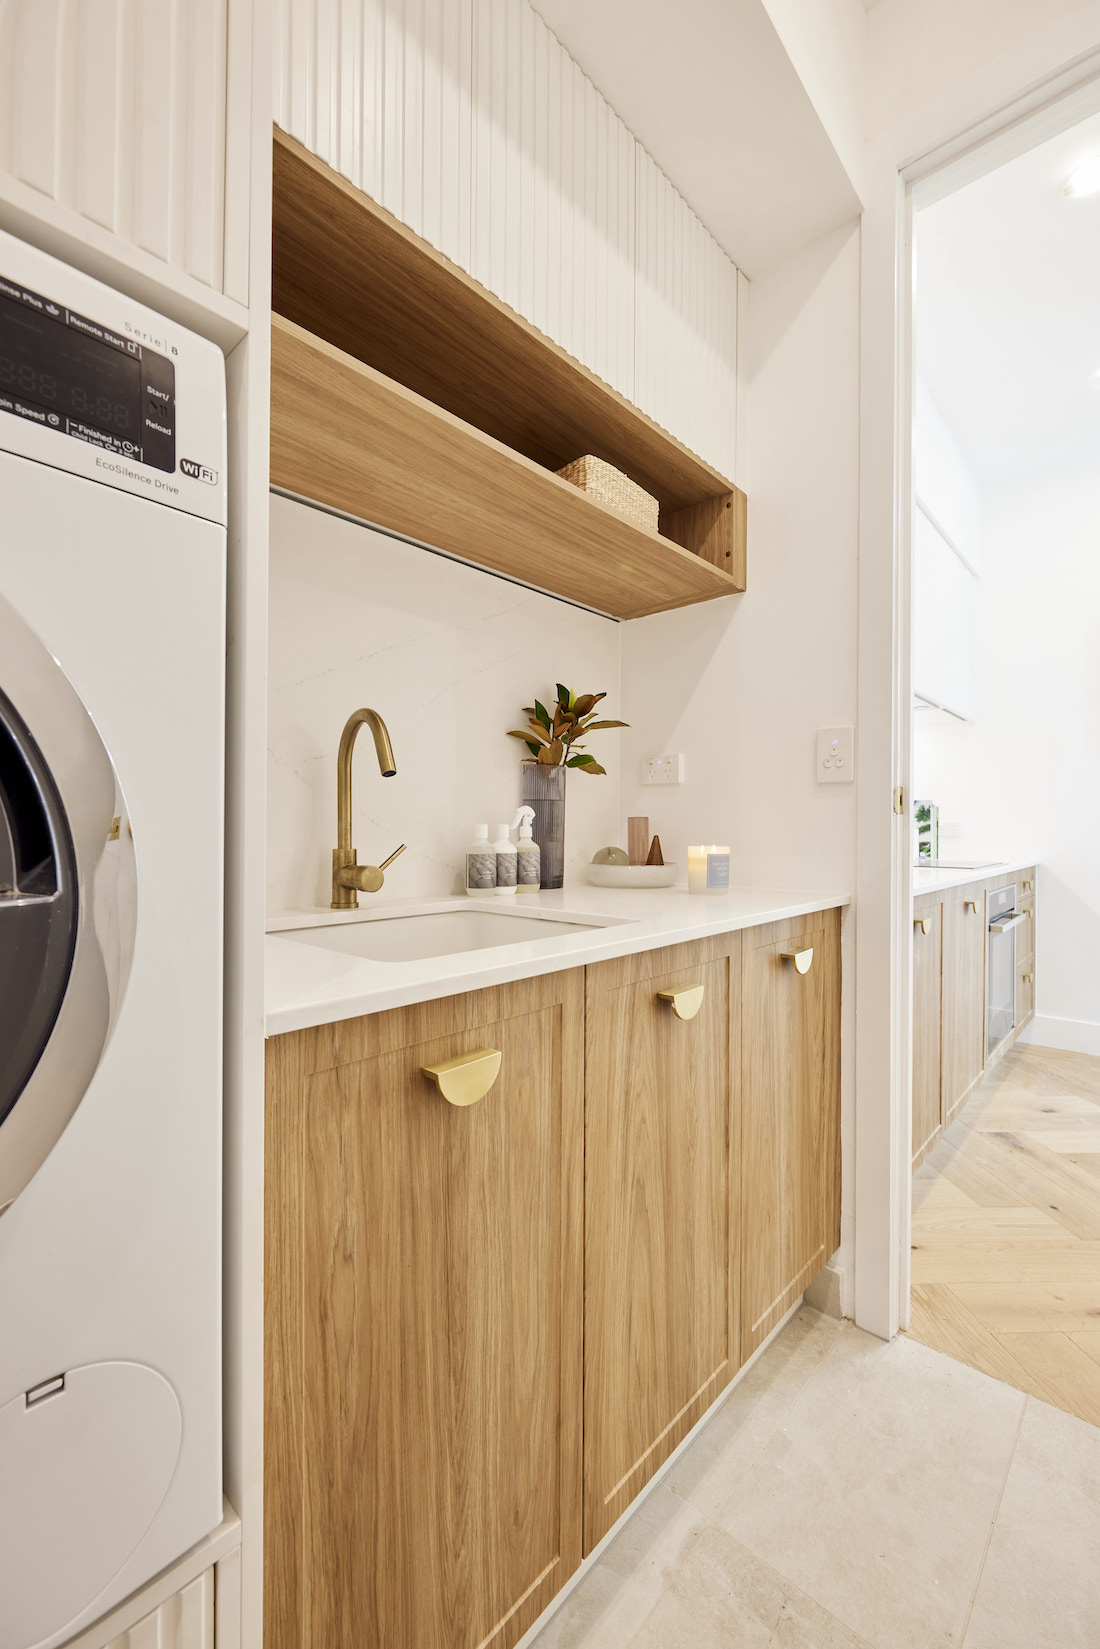 Laundry with timber cabinetry and open shelf